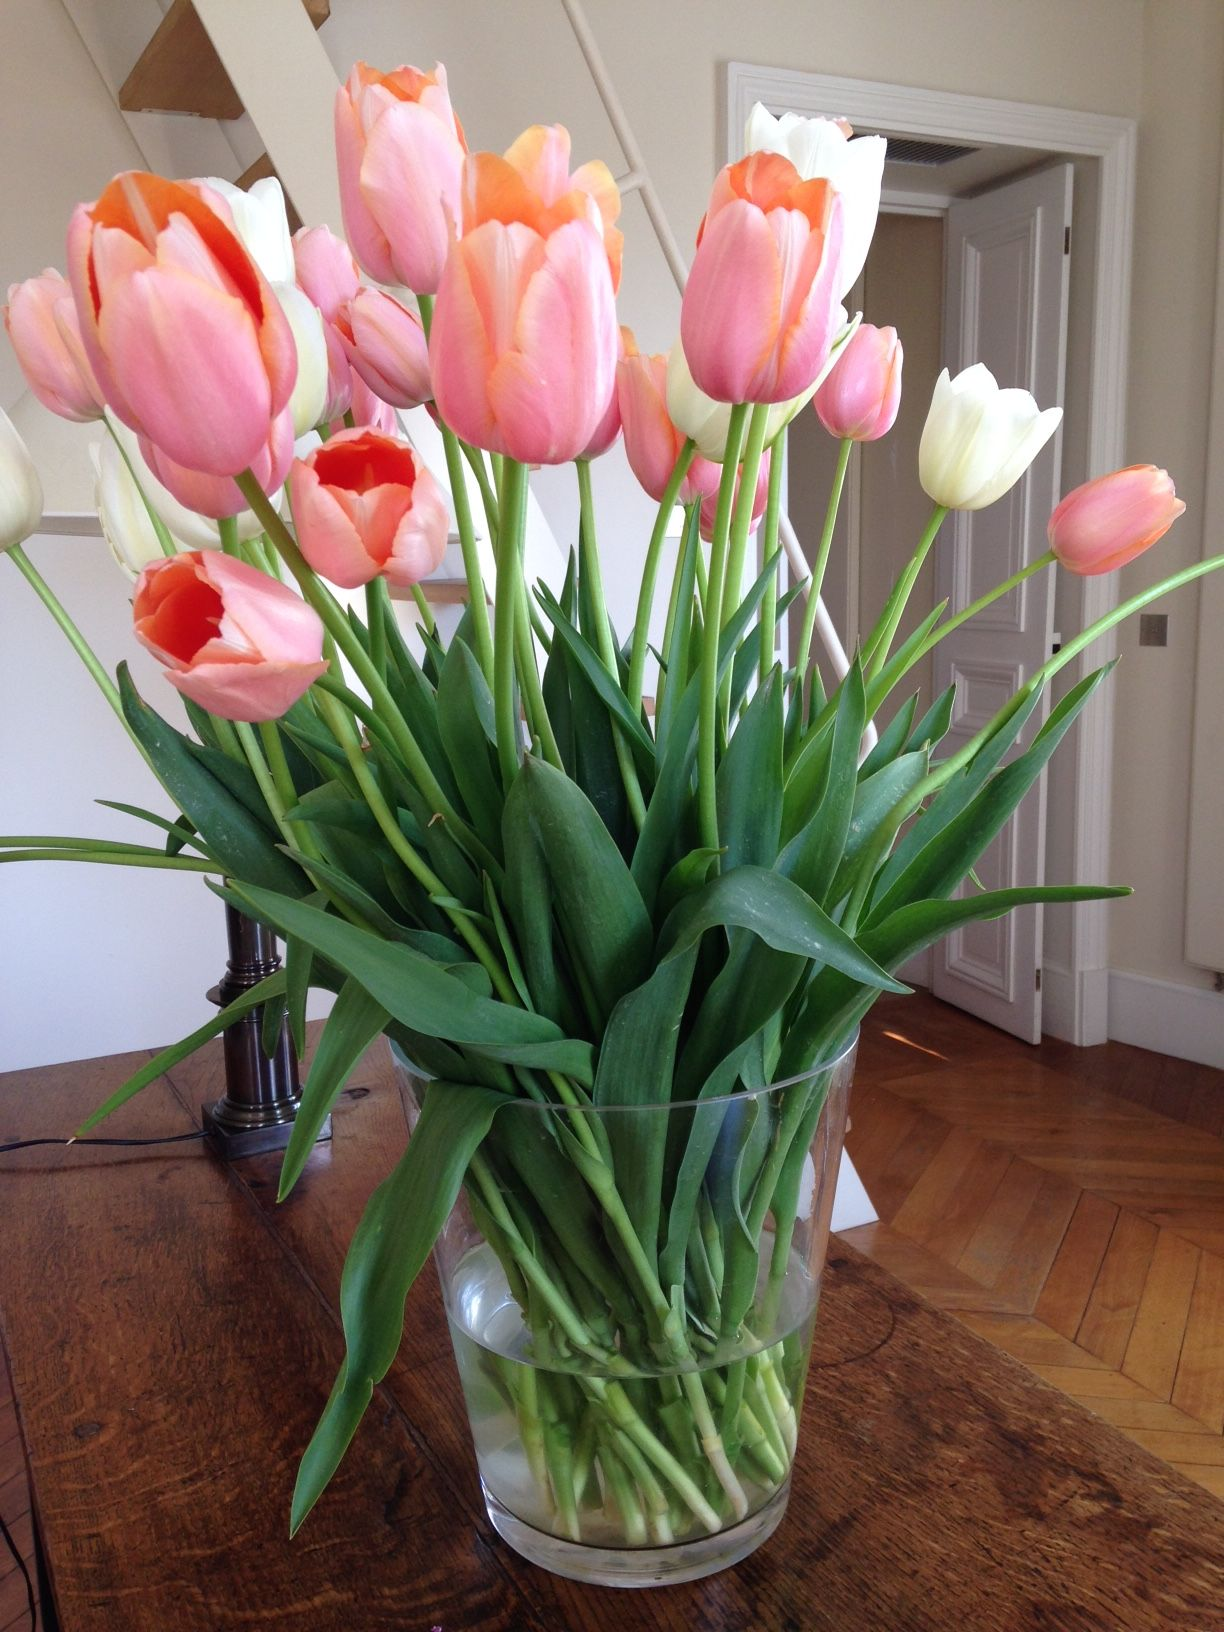 Whether You Buy Flowers At Your Local Grocery Store Or A From A Florist Here Are Three Tips For Making Tulips Last Fi Tulips In Vase Tulips Beautiful Flowers